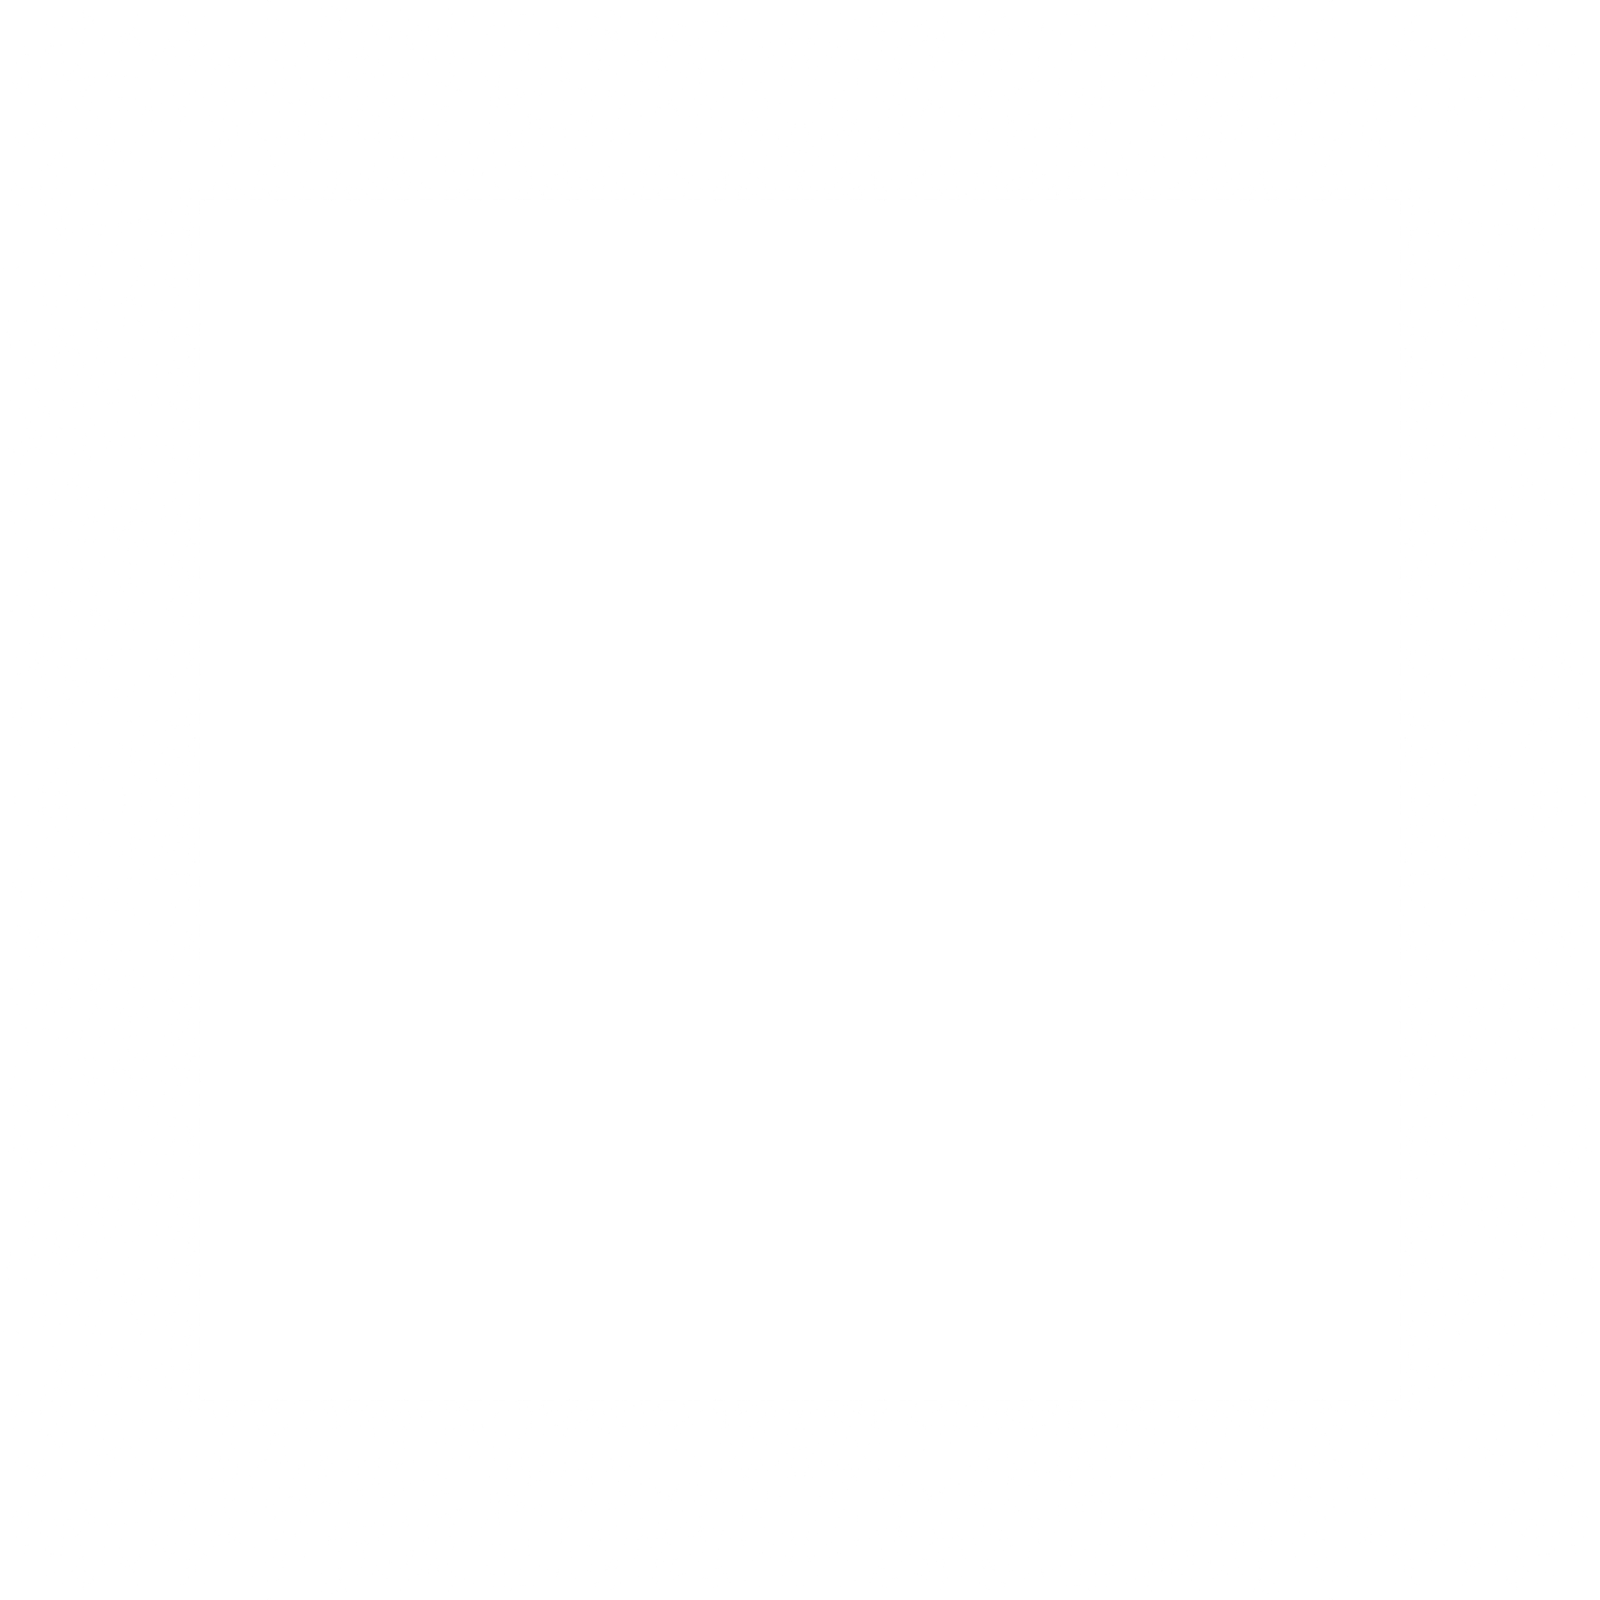 Lace frame png. Download and use border